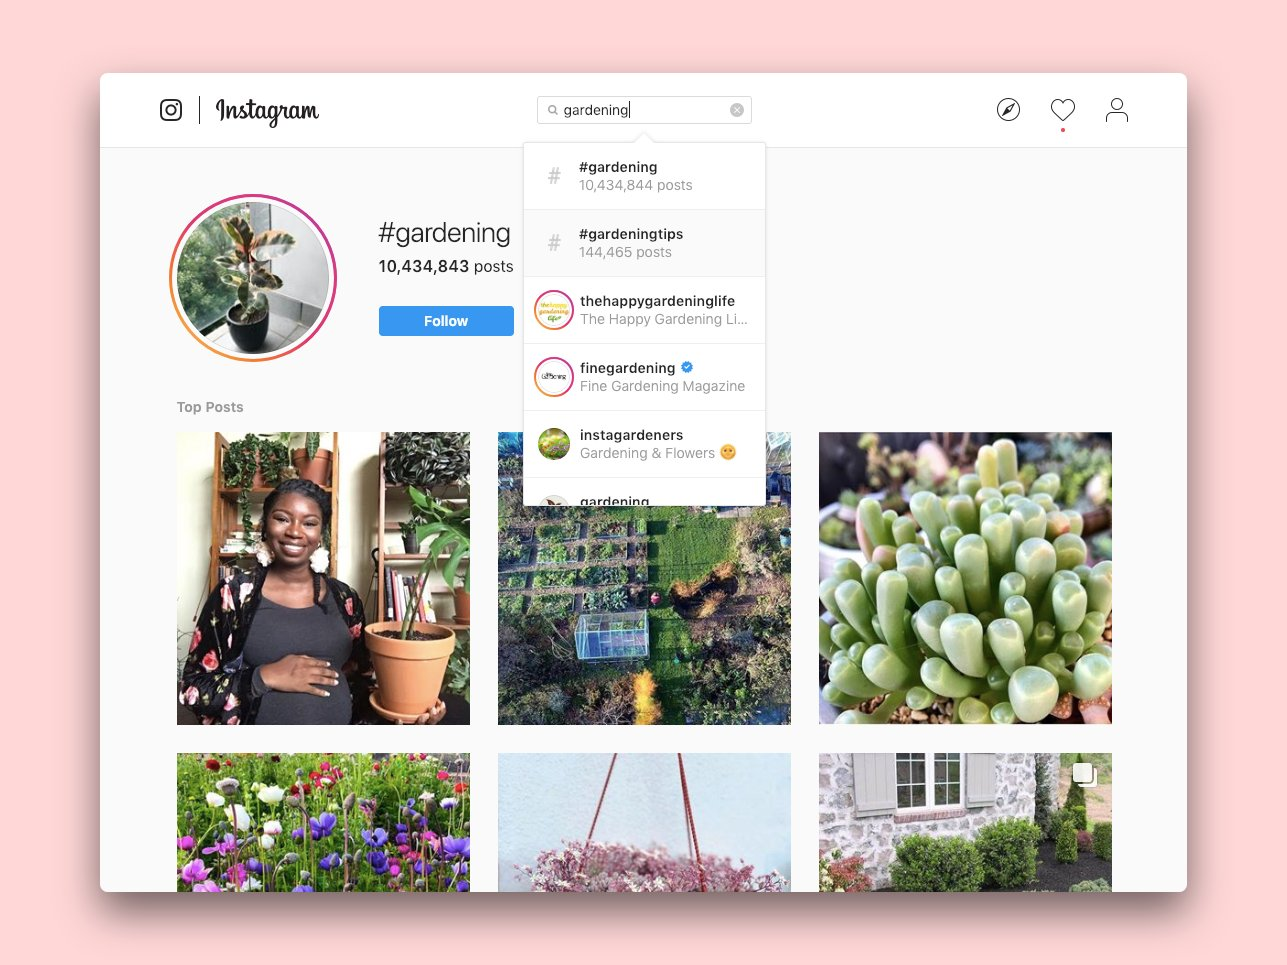 The #gardening search page on Instagram